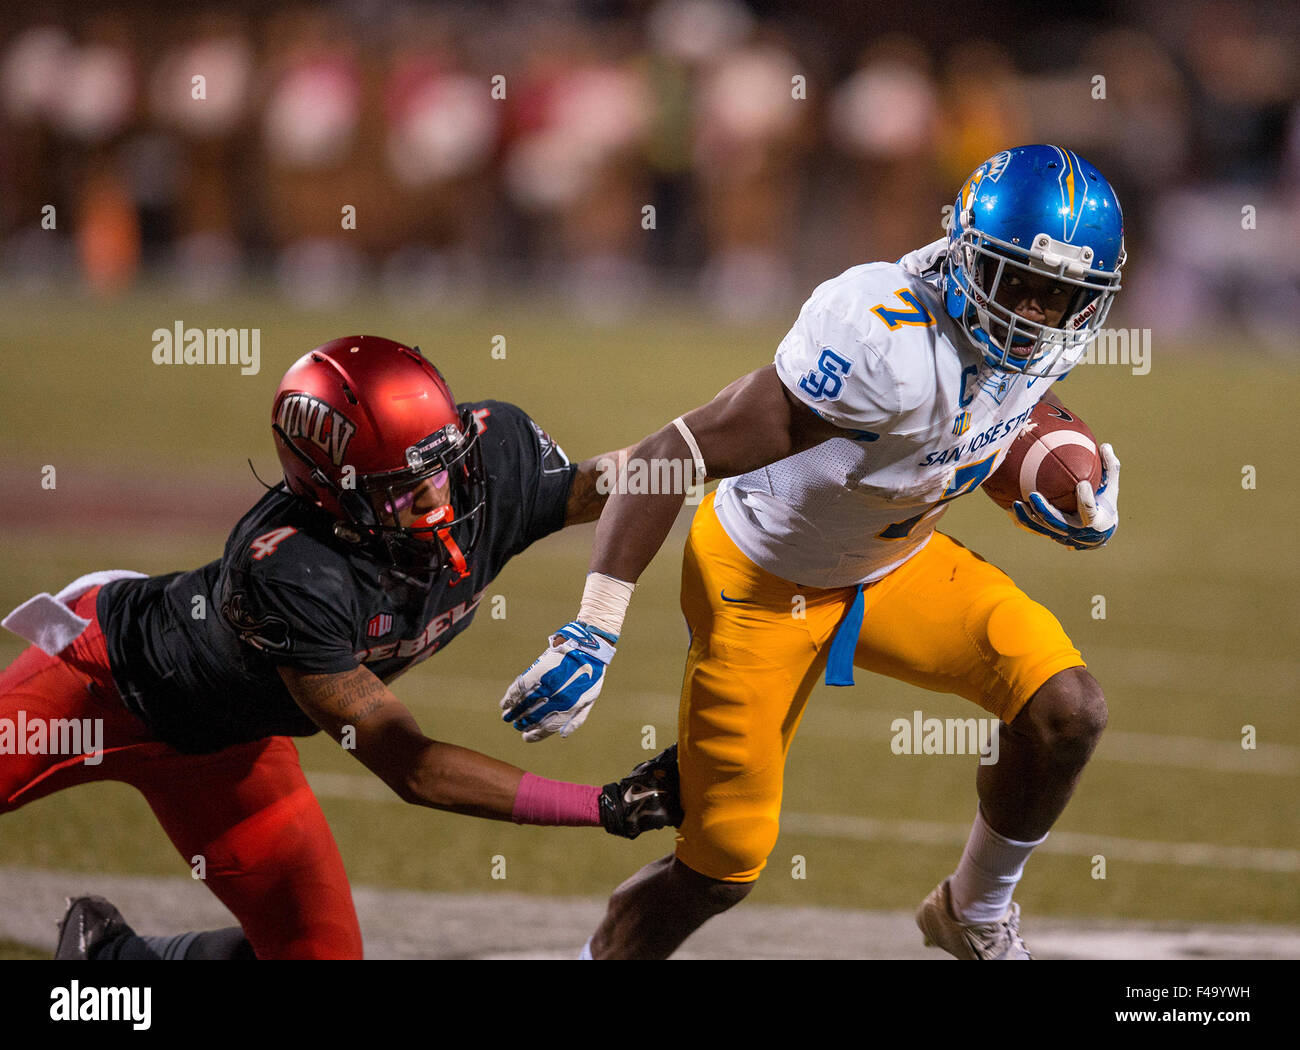 Las Vegas, NV, USA. 10th Oct, 2015. San Jose State running back (7) Tyler Ervin tries to break free of an attempted Stock Photo